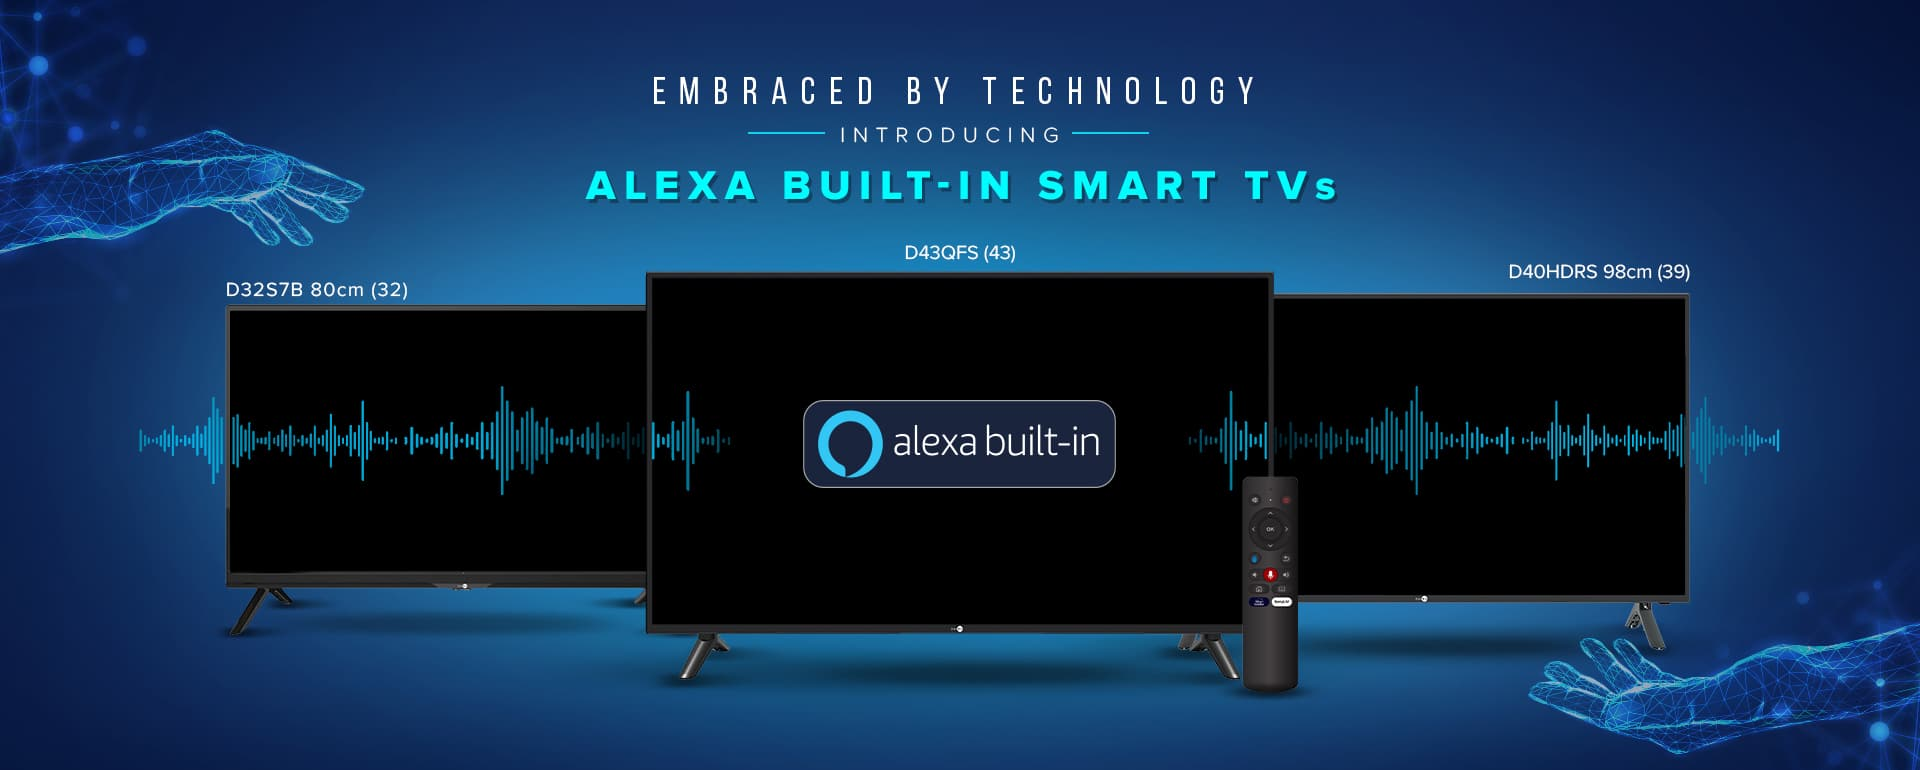 Daiwa - Alexa Built-in Tv's